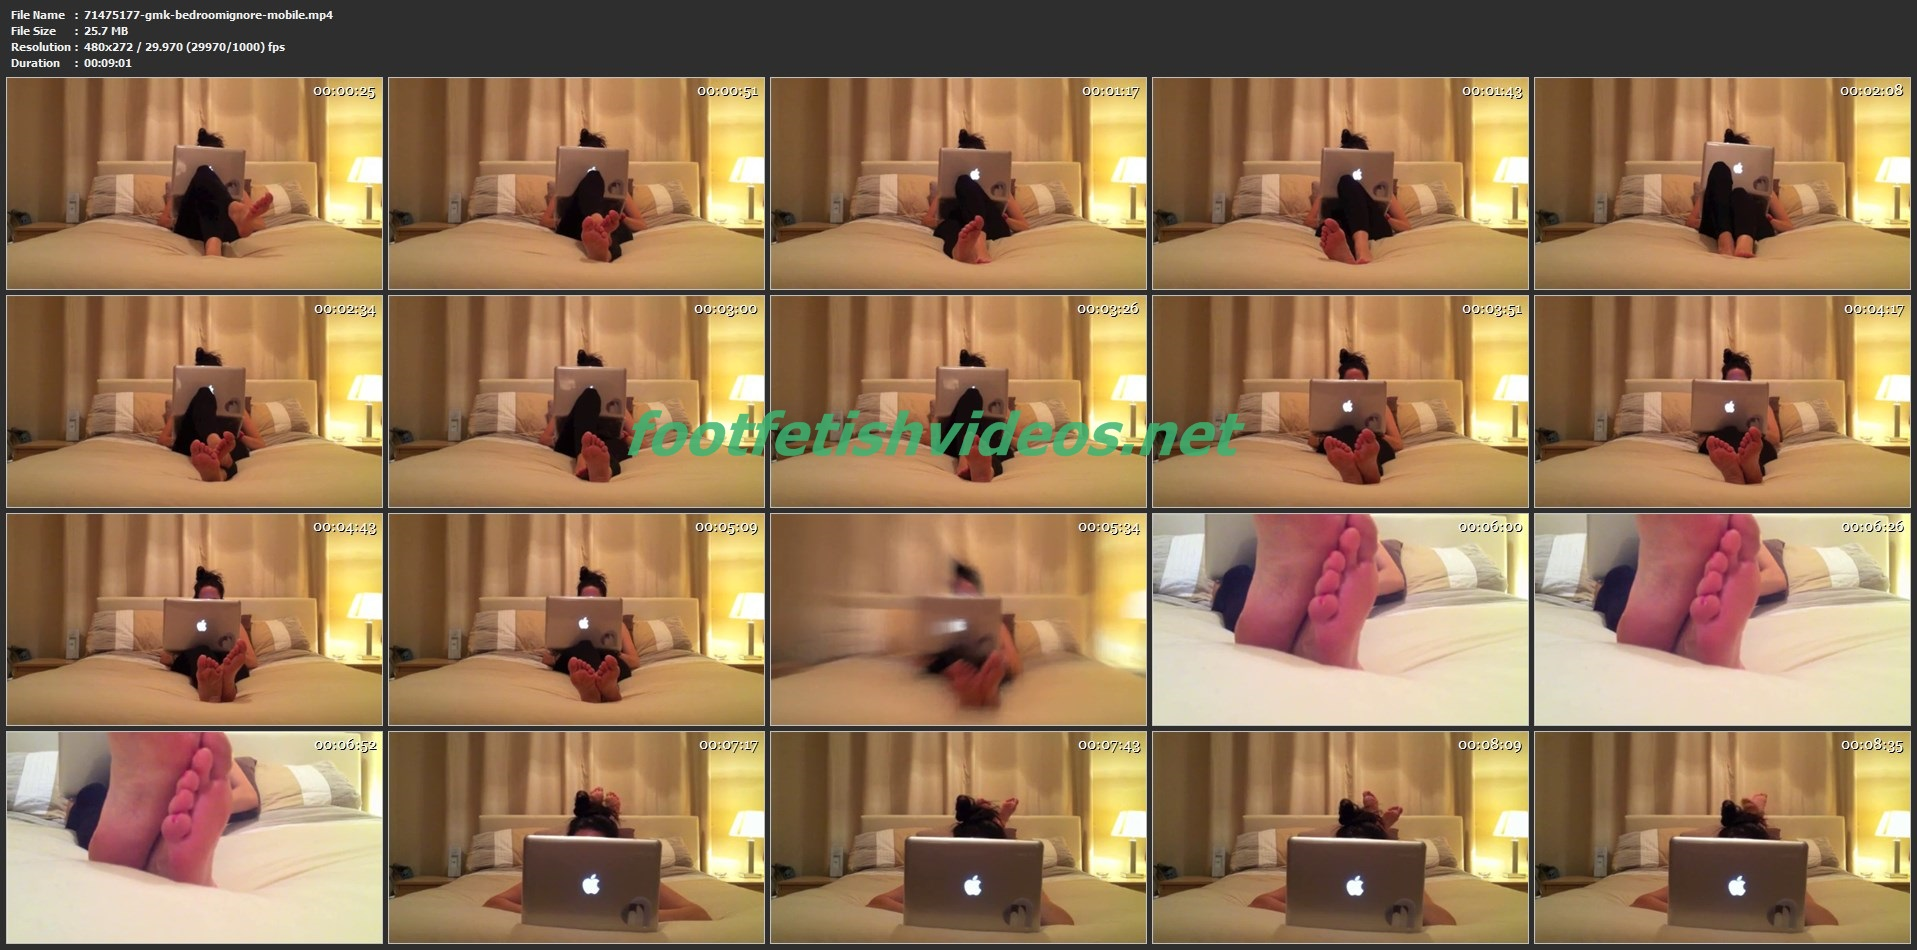 goddessmskelly-71475177-gmk-bedroomignore-mobile-mp4